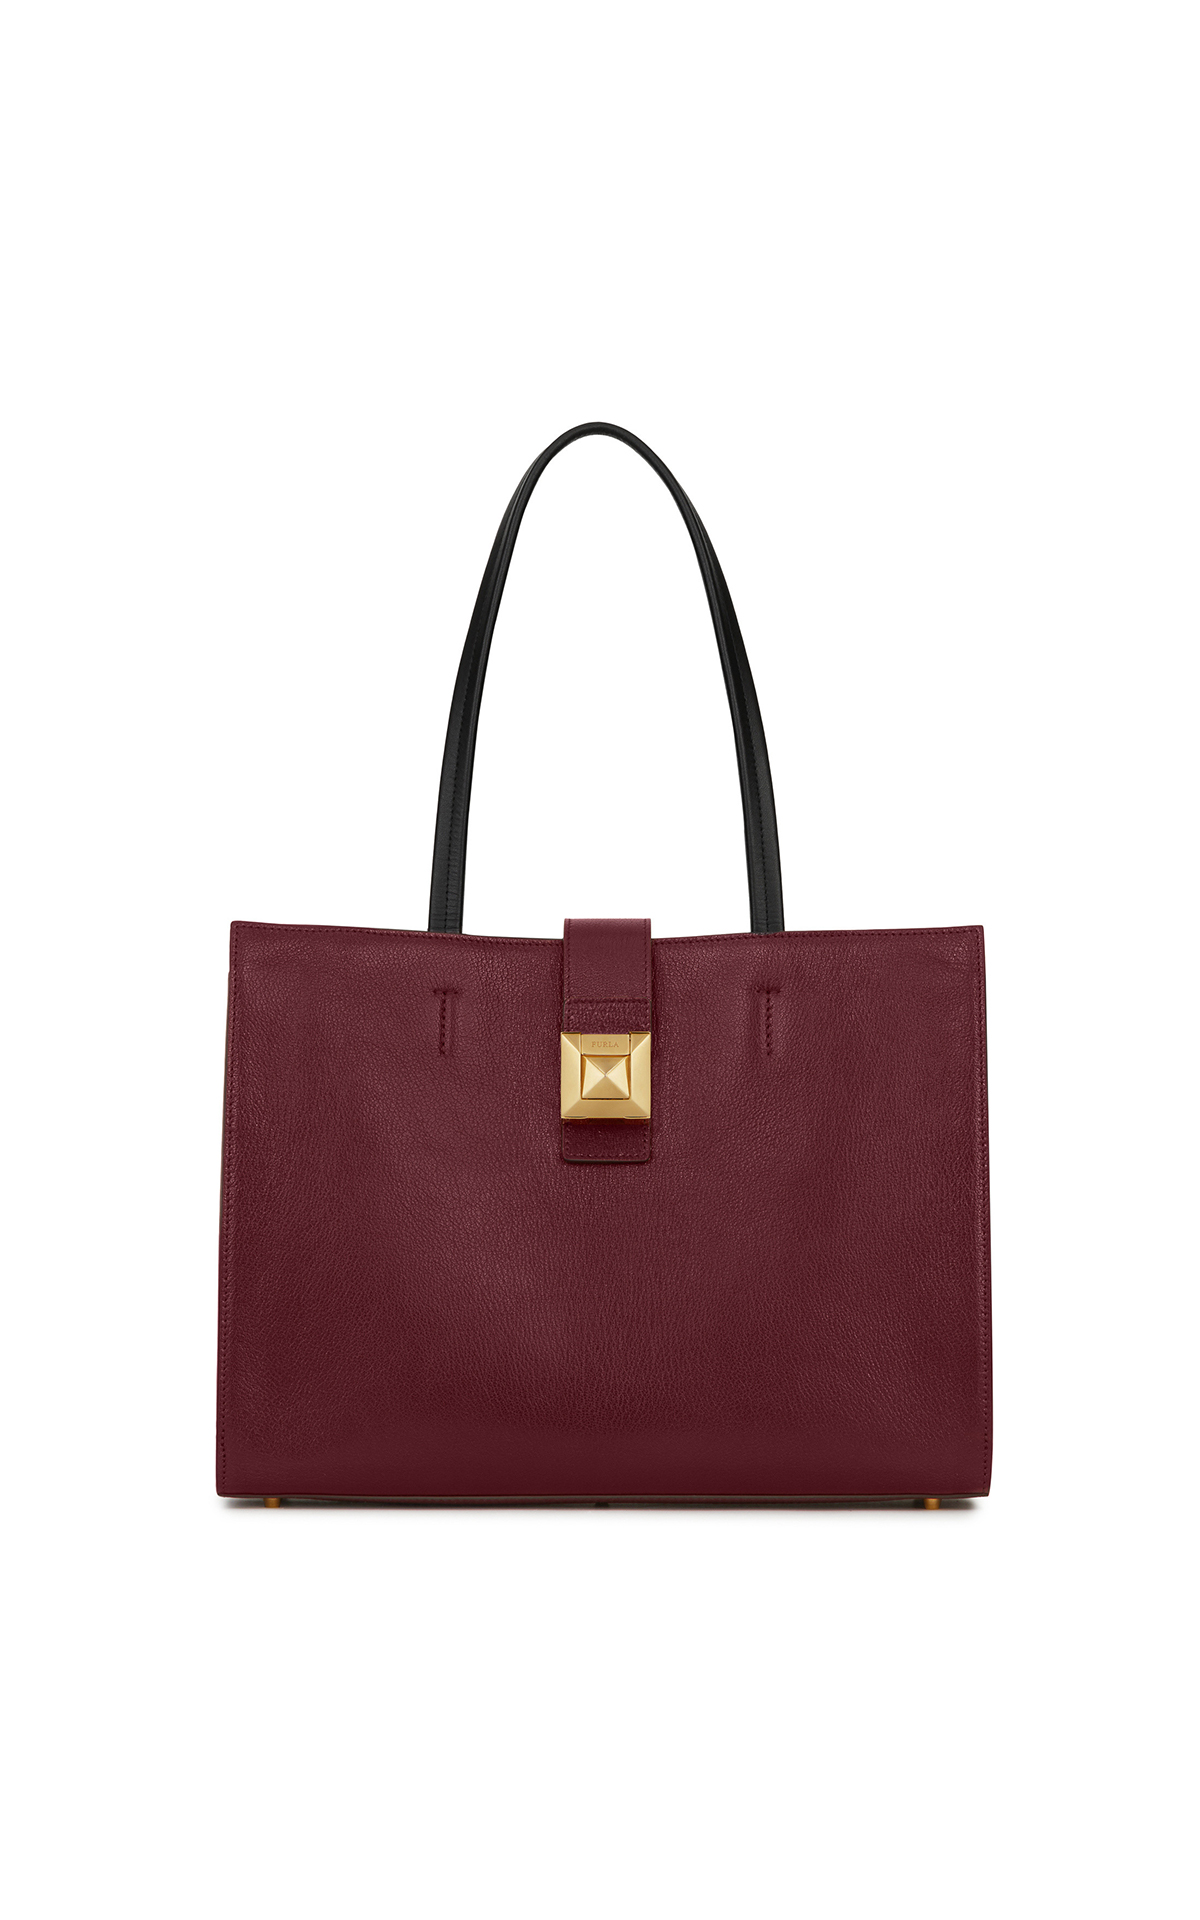 Furla Large linea tote at The Bicester Village Shopping Collection